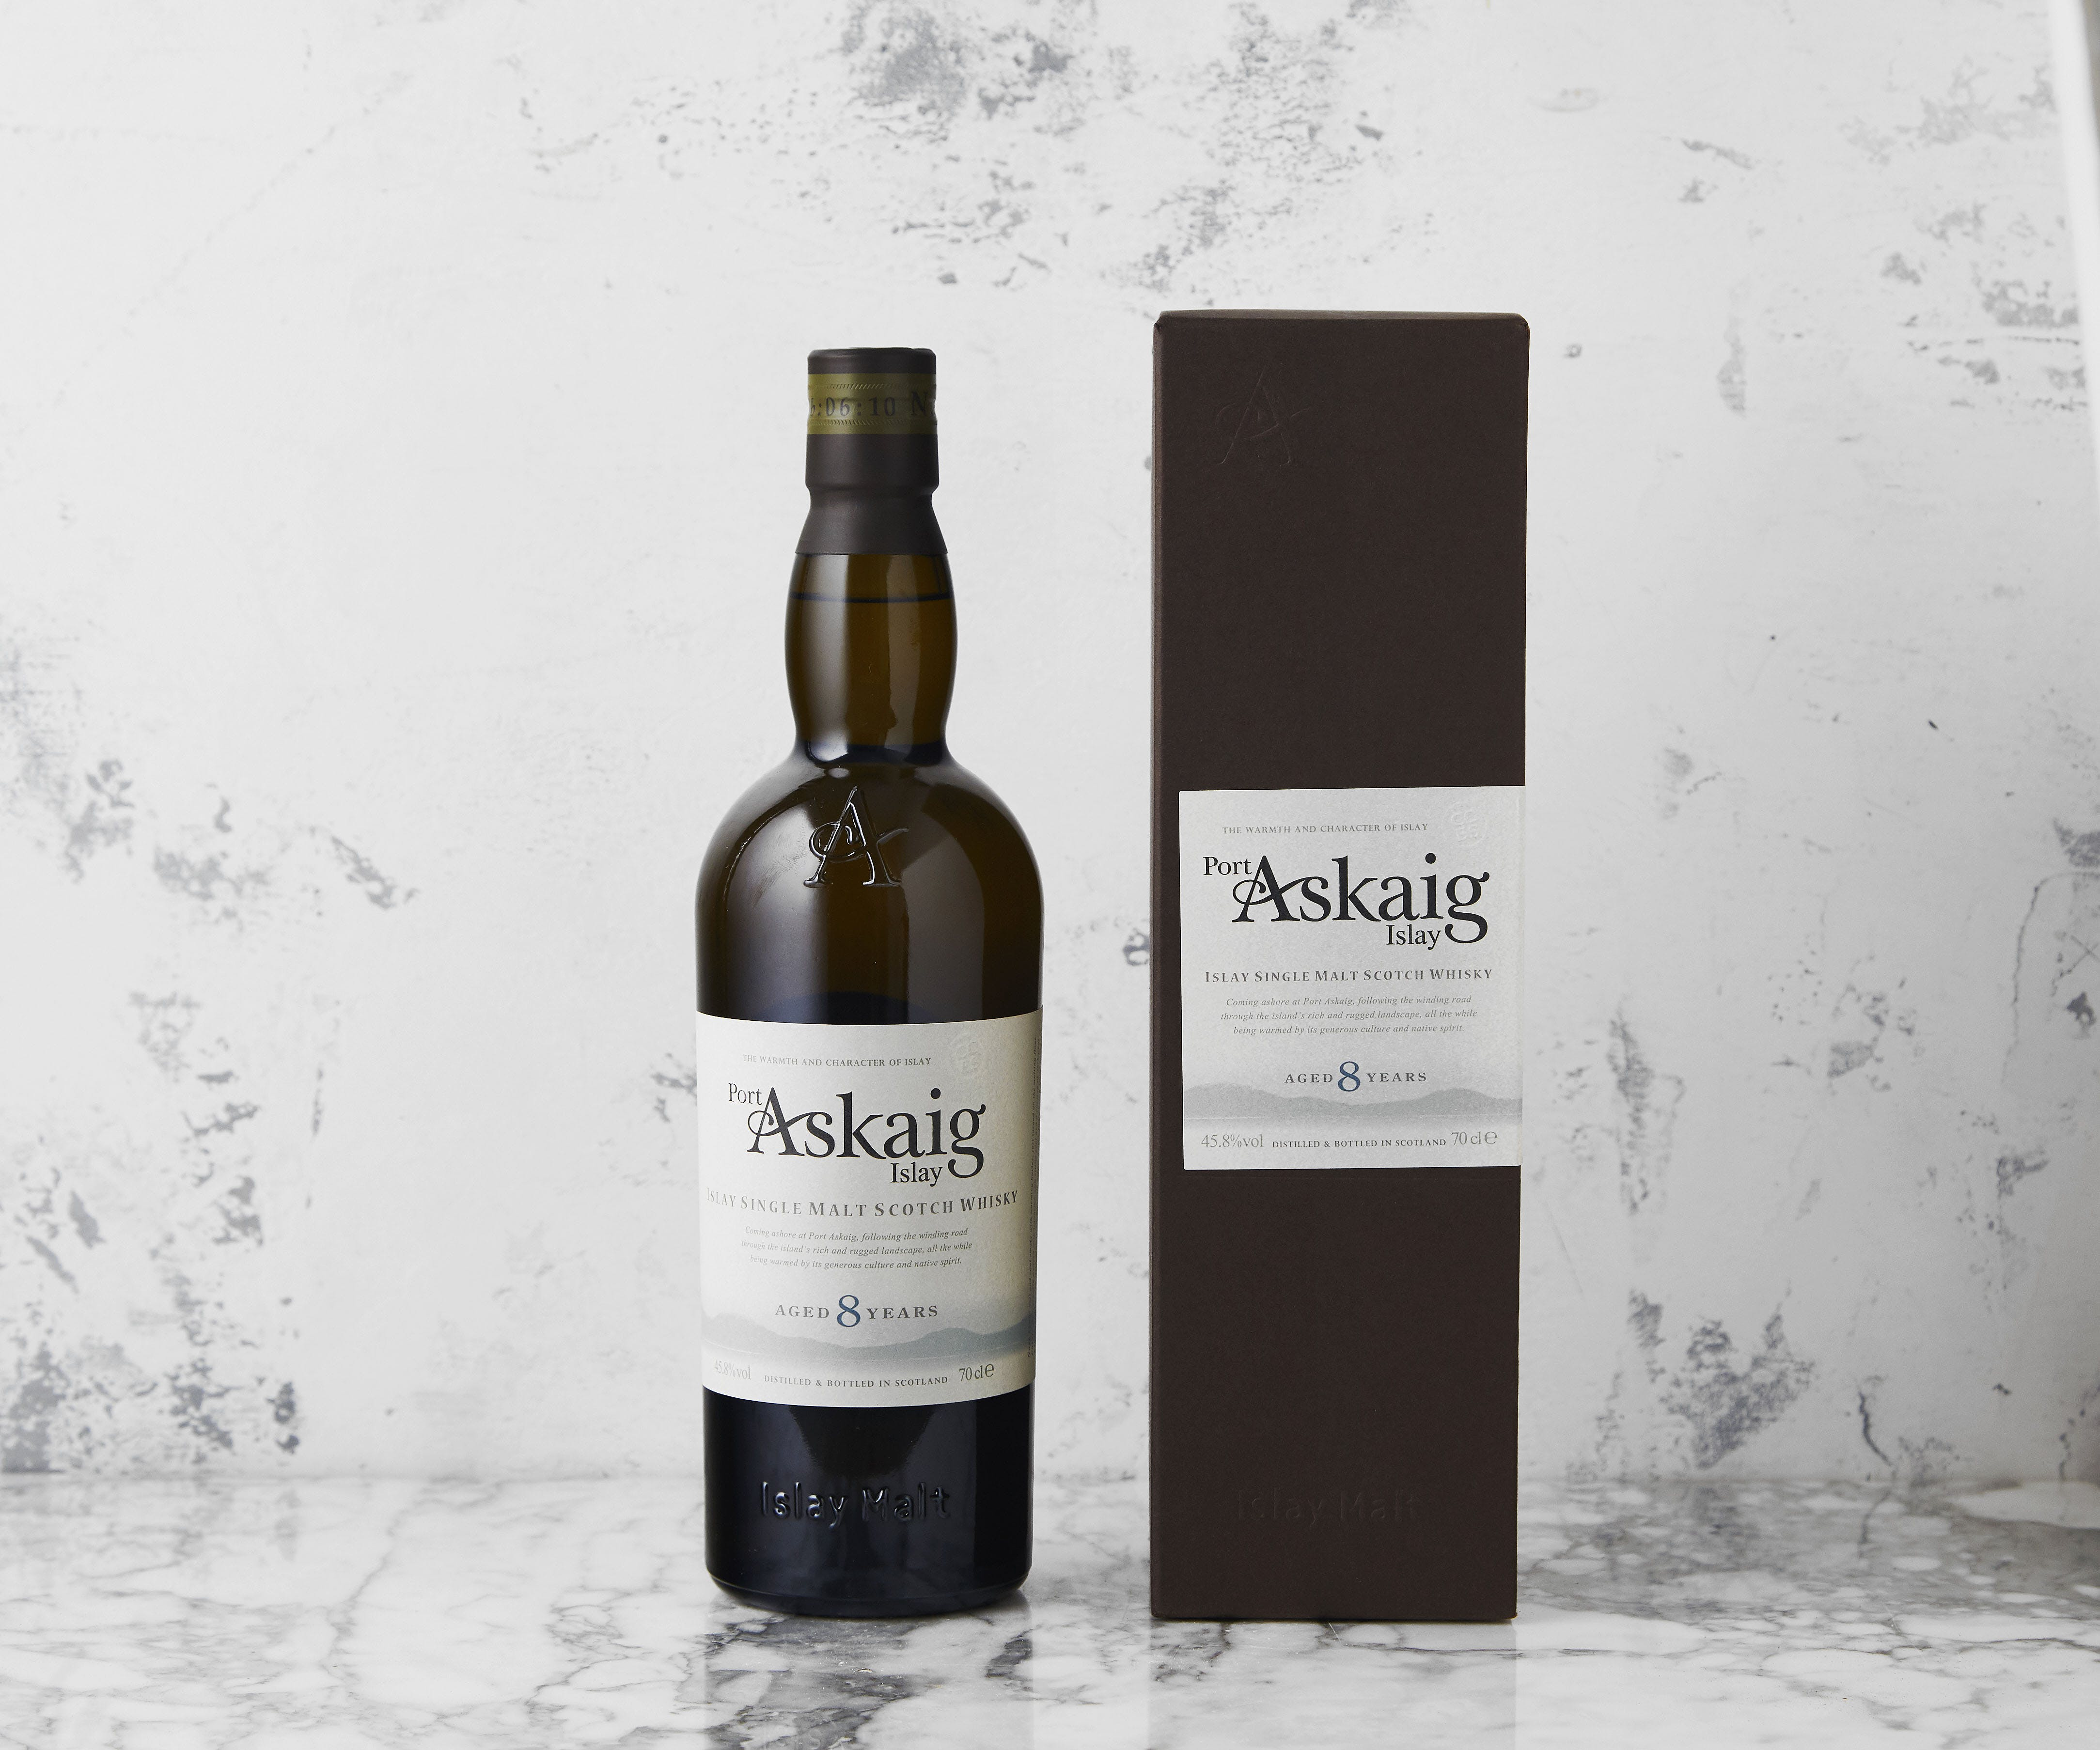 Port Askaig 8 Year Old Whisky